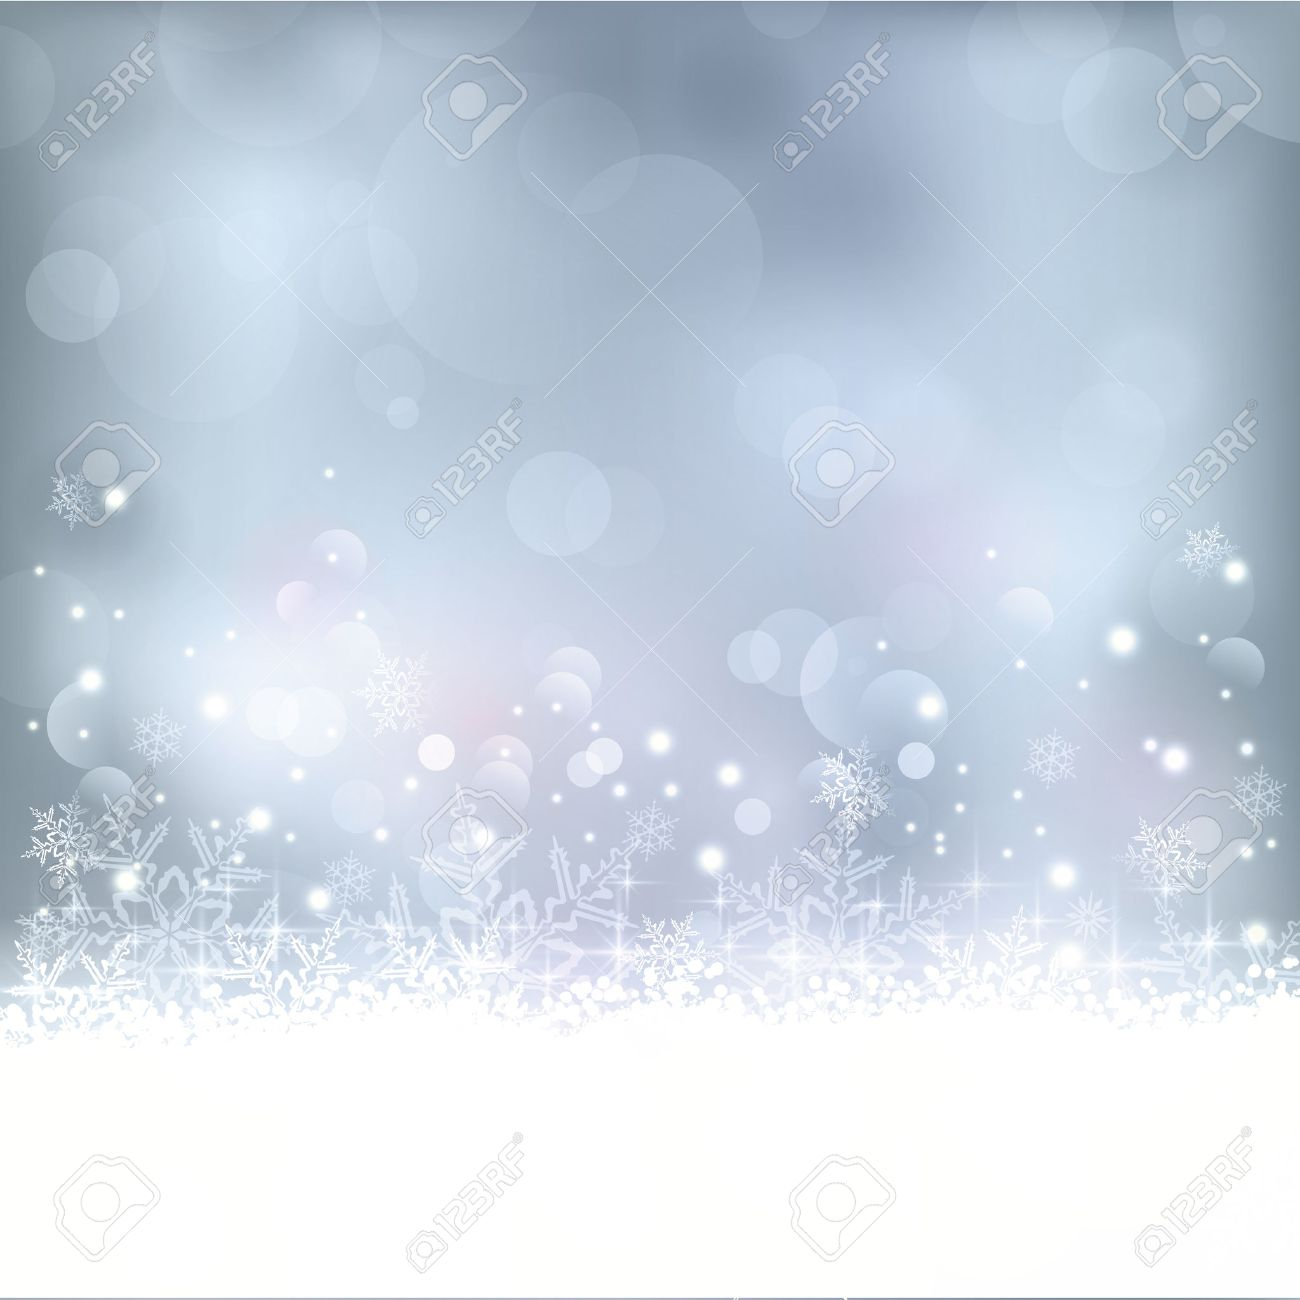 Wintry blue abstract background with out of focus light dots, stars,snowflakes and copy space. Great for the festive season of Christmas to come or any other winter occasion. - 32779968